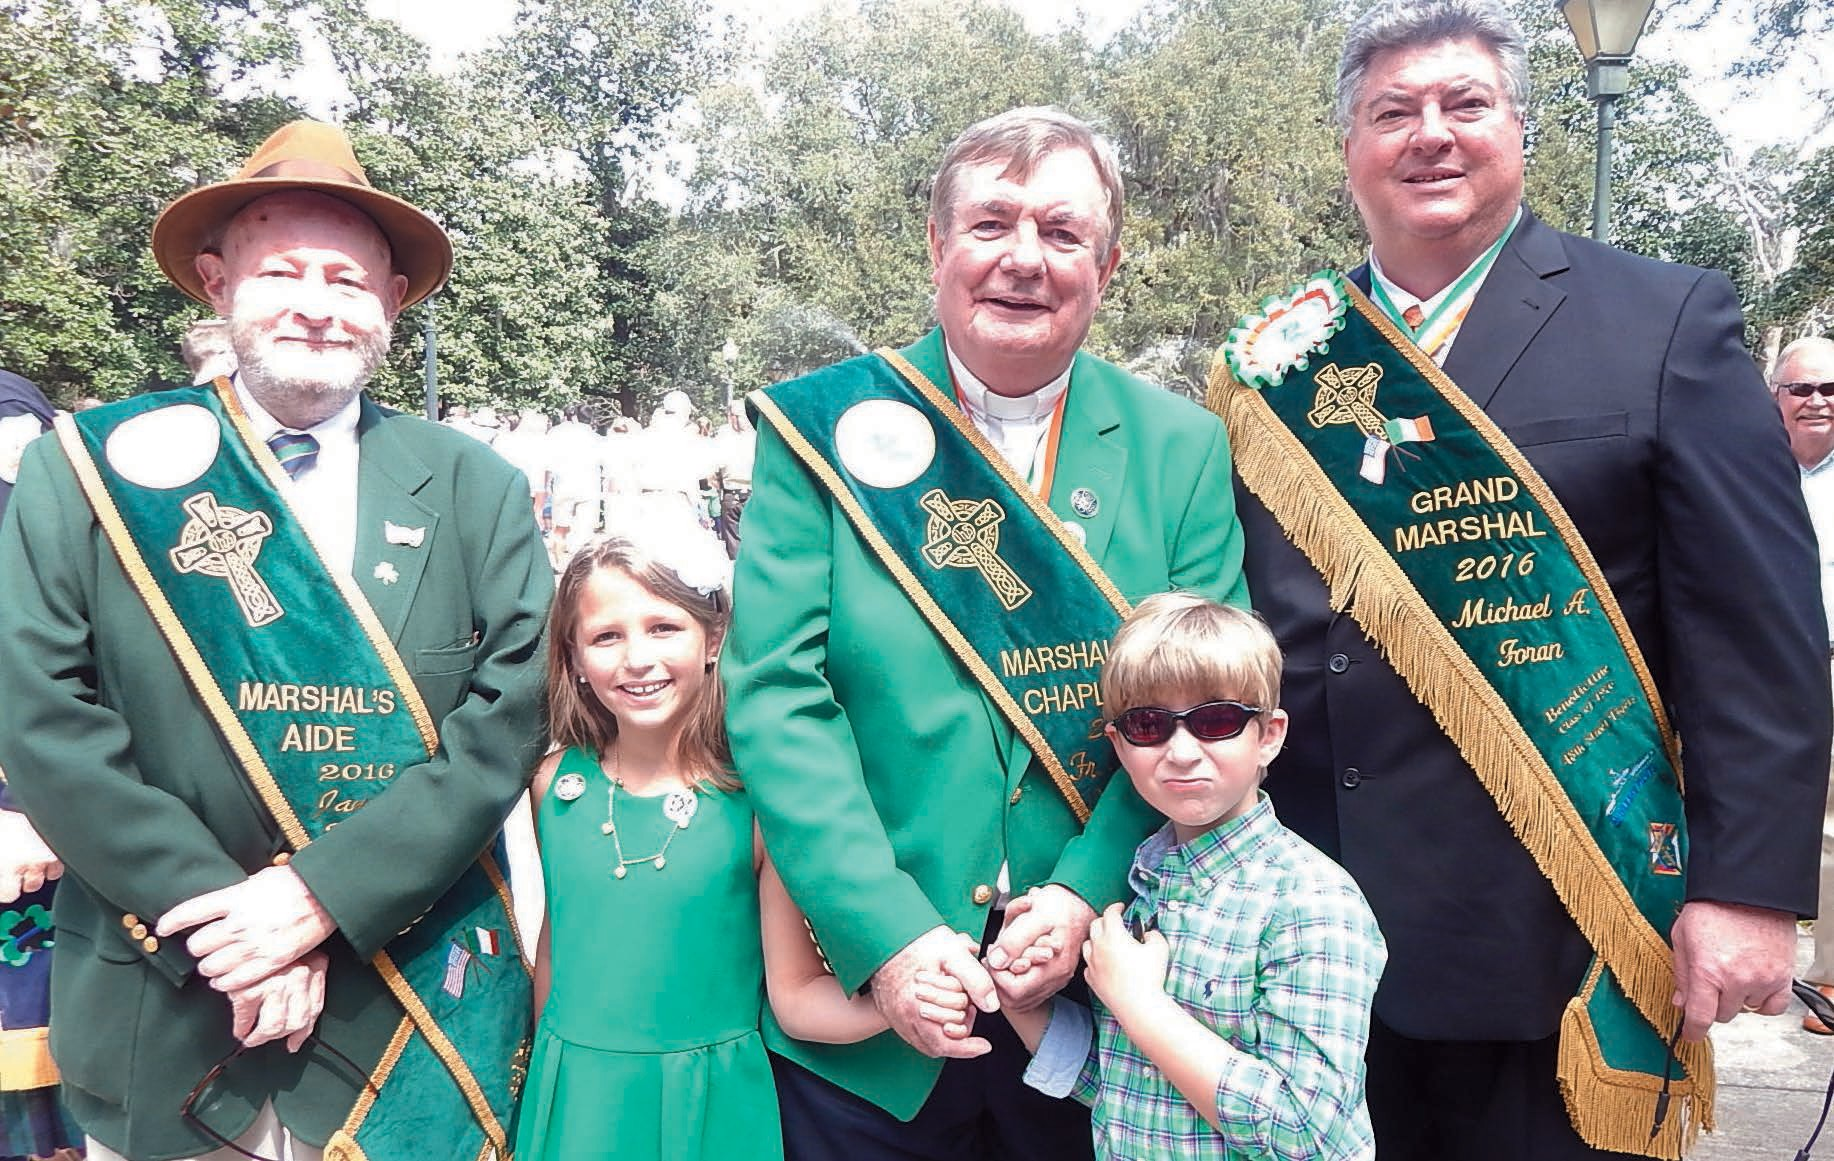 Jay Blackburn, Father Patrick O'Brian, and Grand Marshal Michael A. Foran shown with Addison and Matthew Gavin.